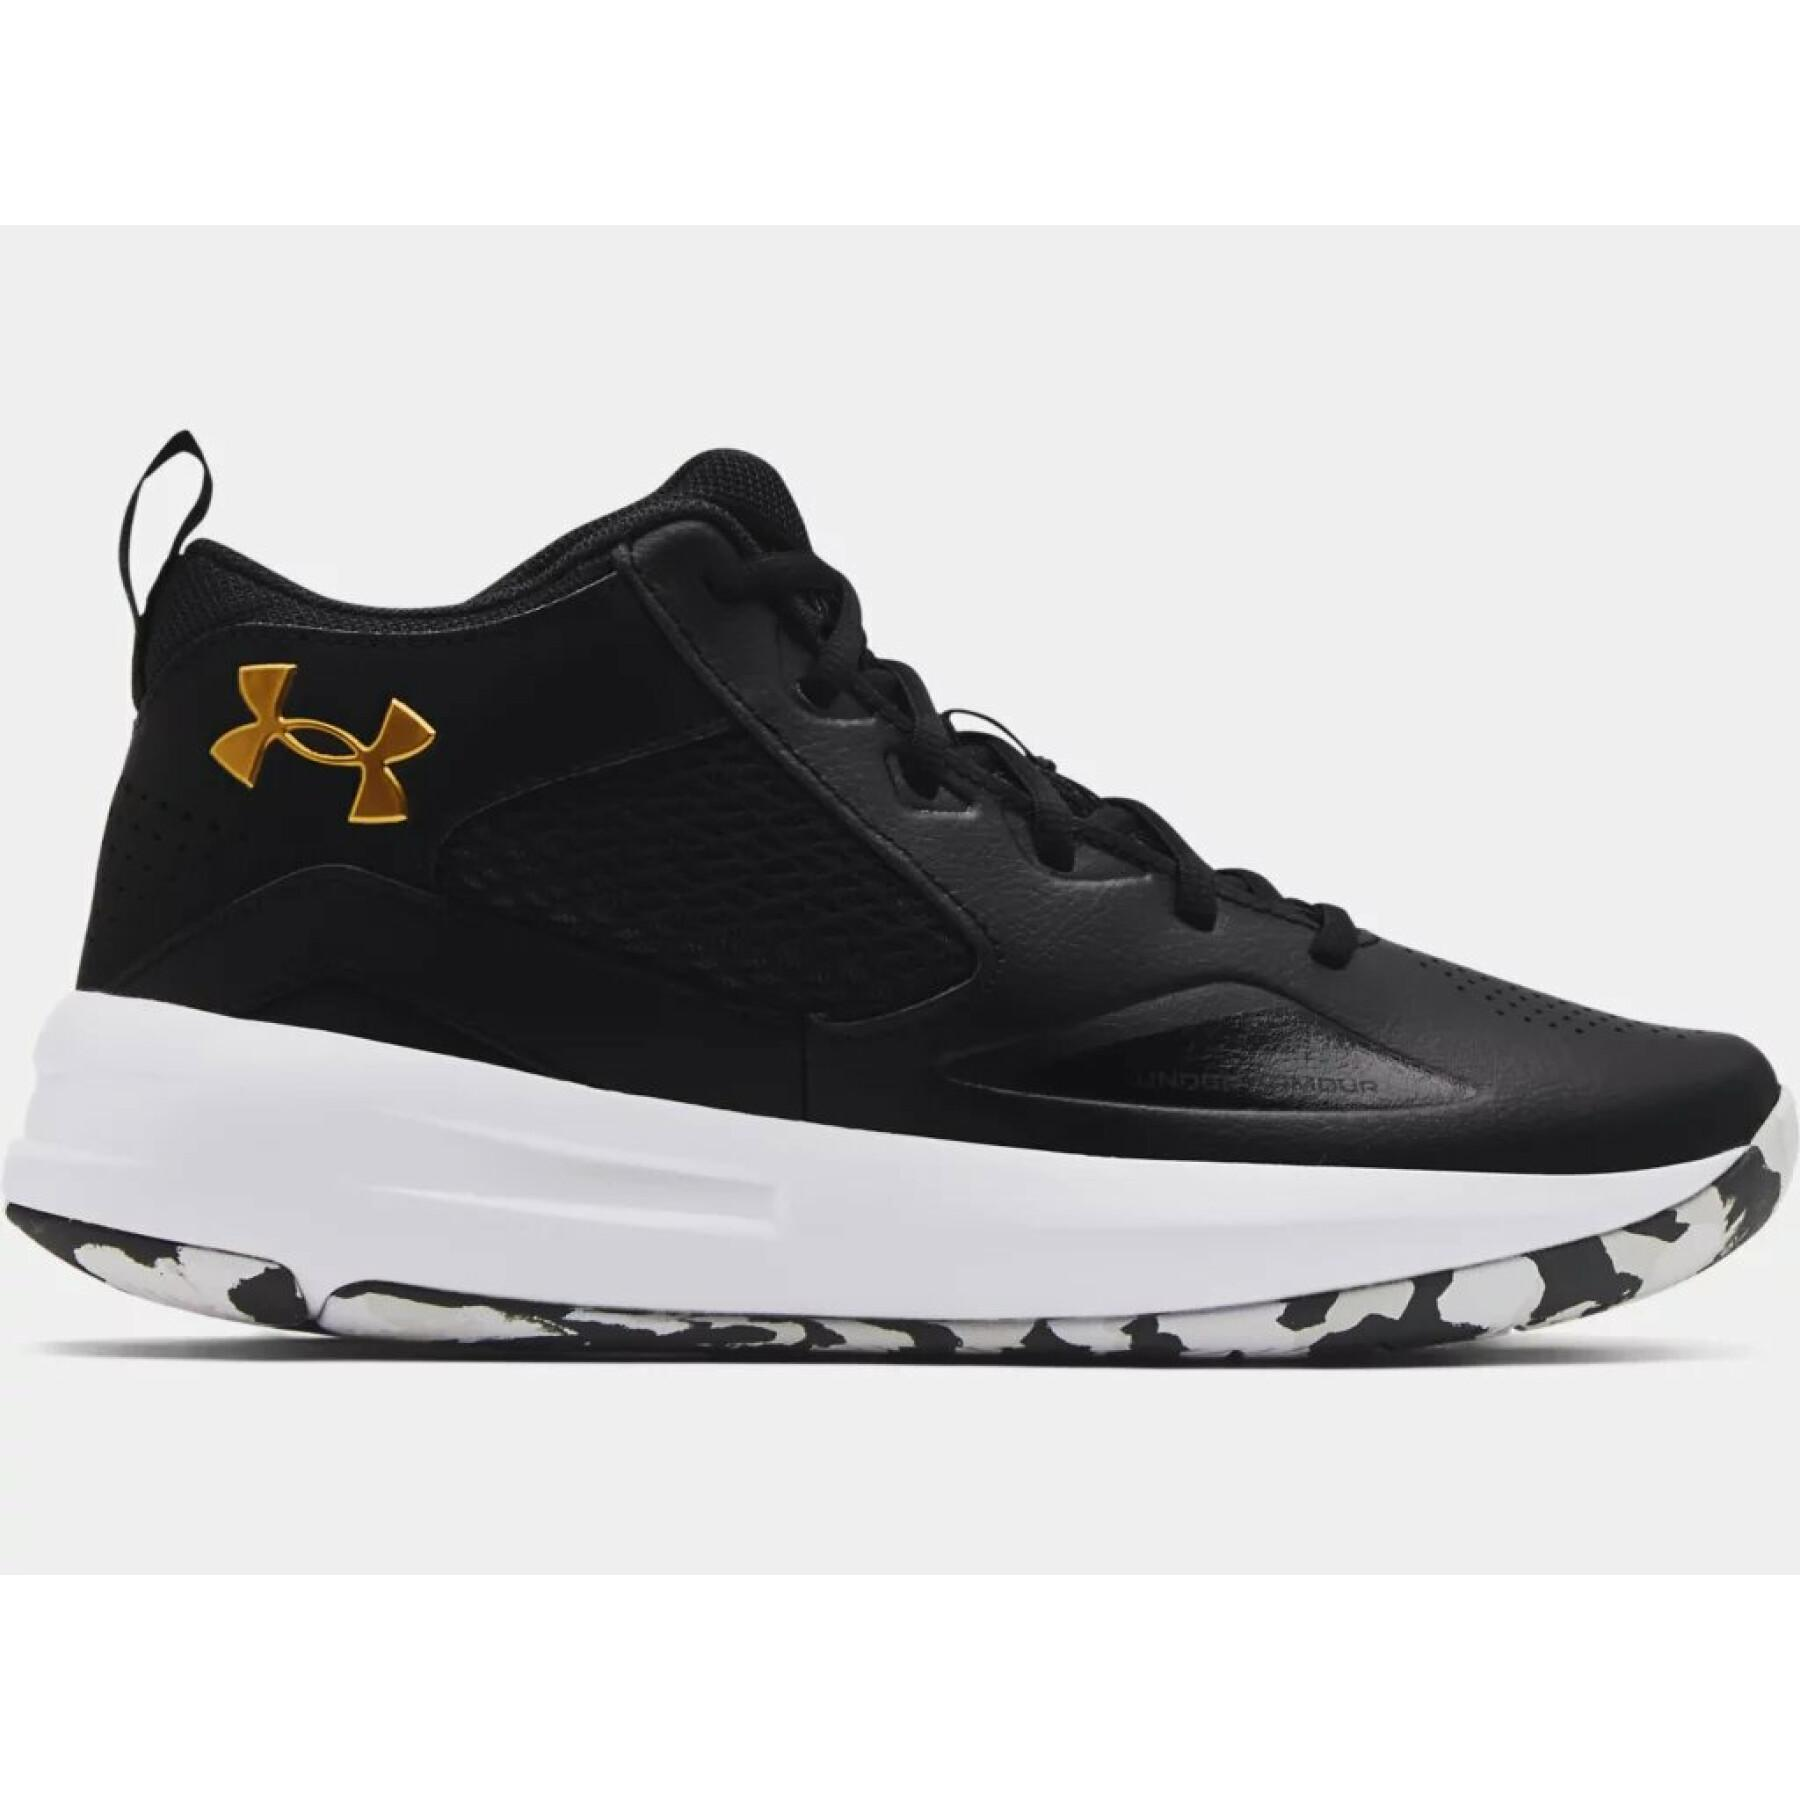 Basketball shoes Under Armour Lockdown 5